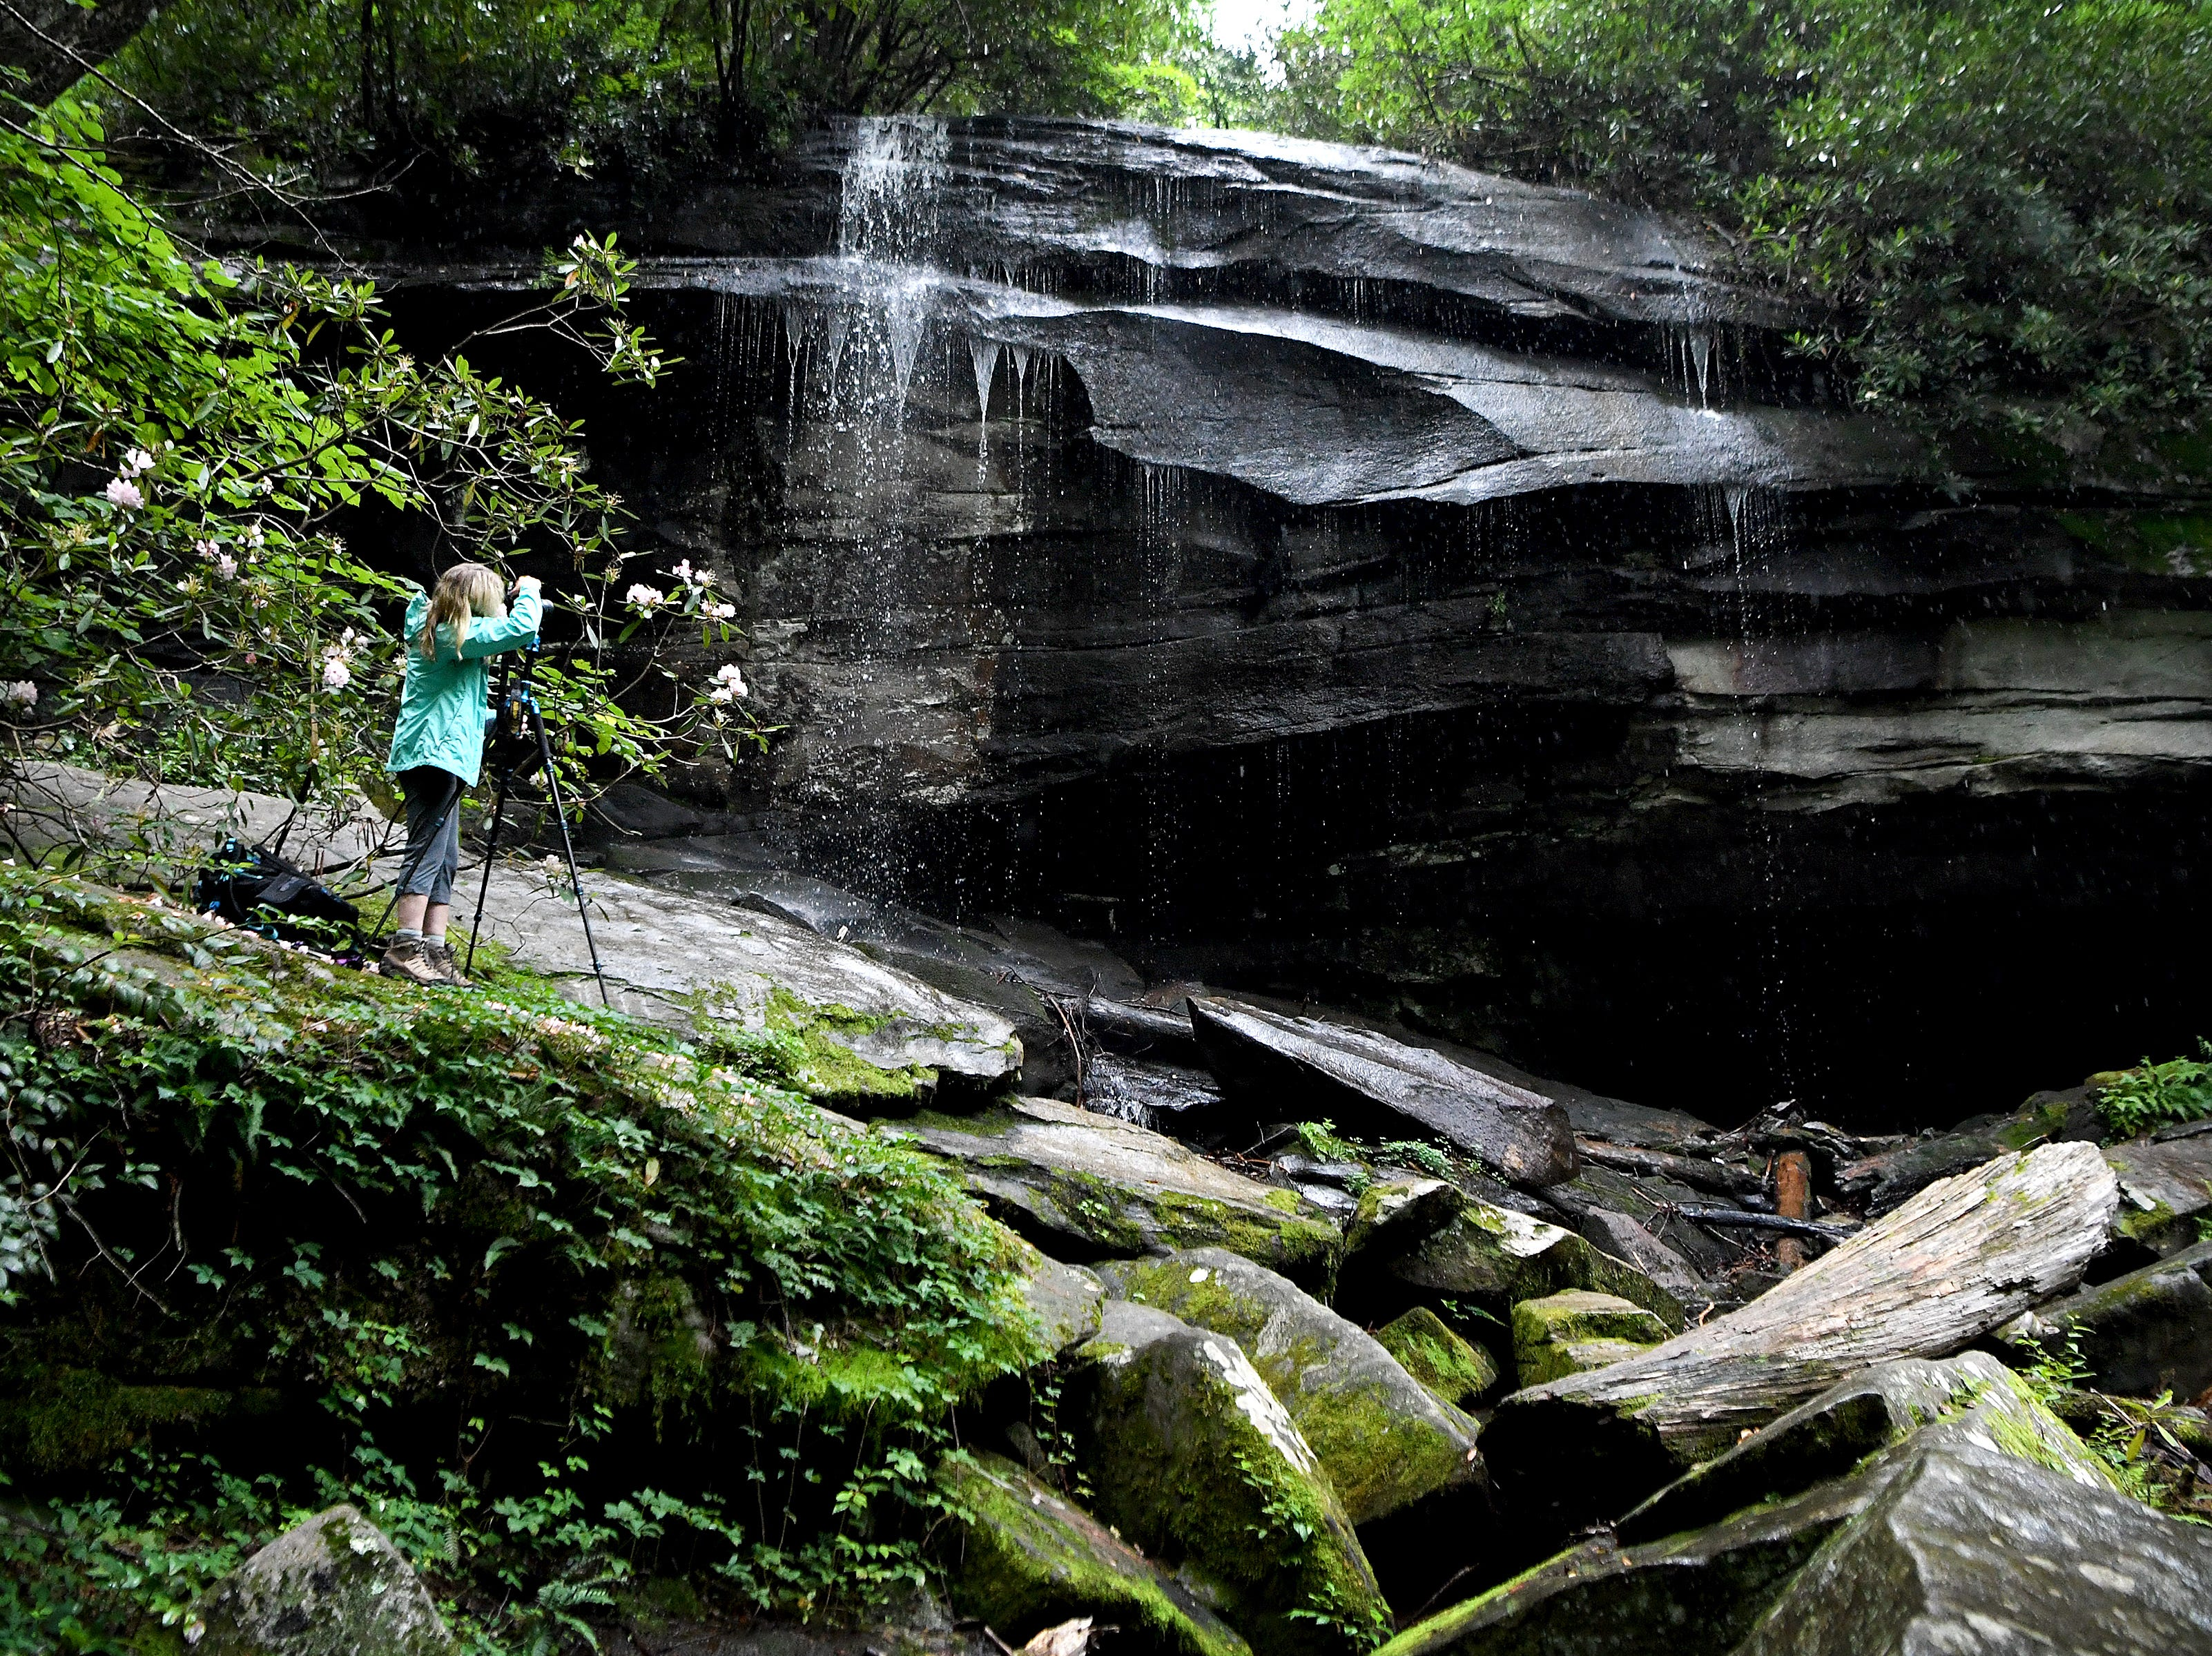 Landscape photographer Theresa Rasmussen, of Virginia, takes a photo of Slick Rock Falls in the Pisgah National Forest on Thursday, July 19, 2018.